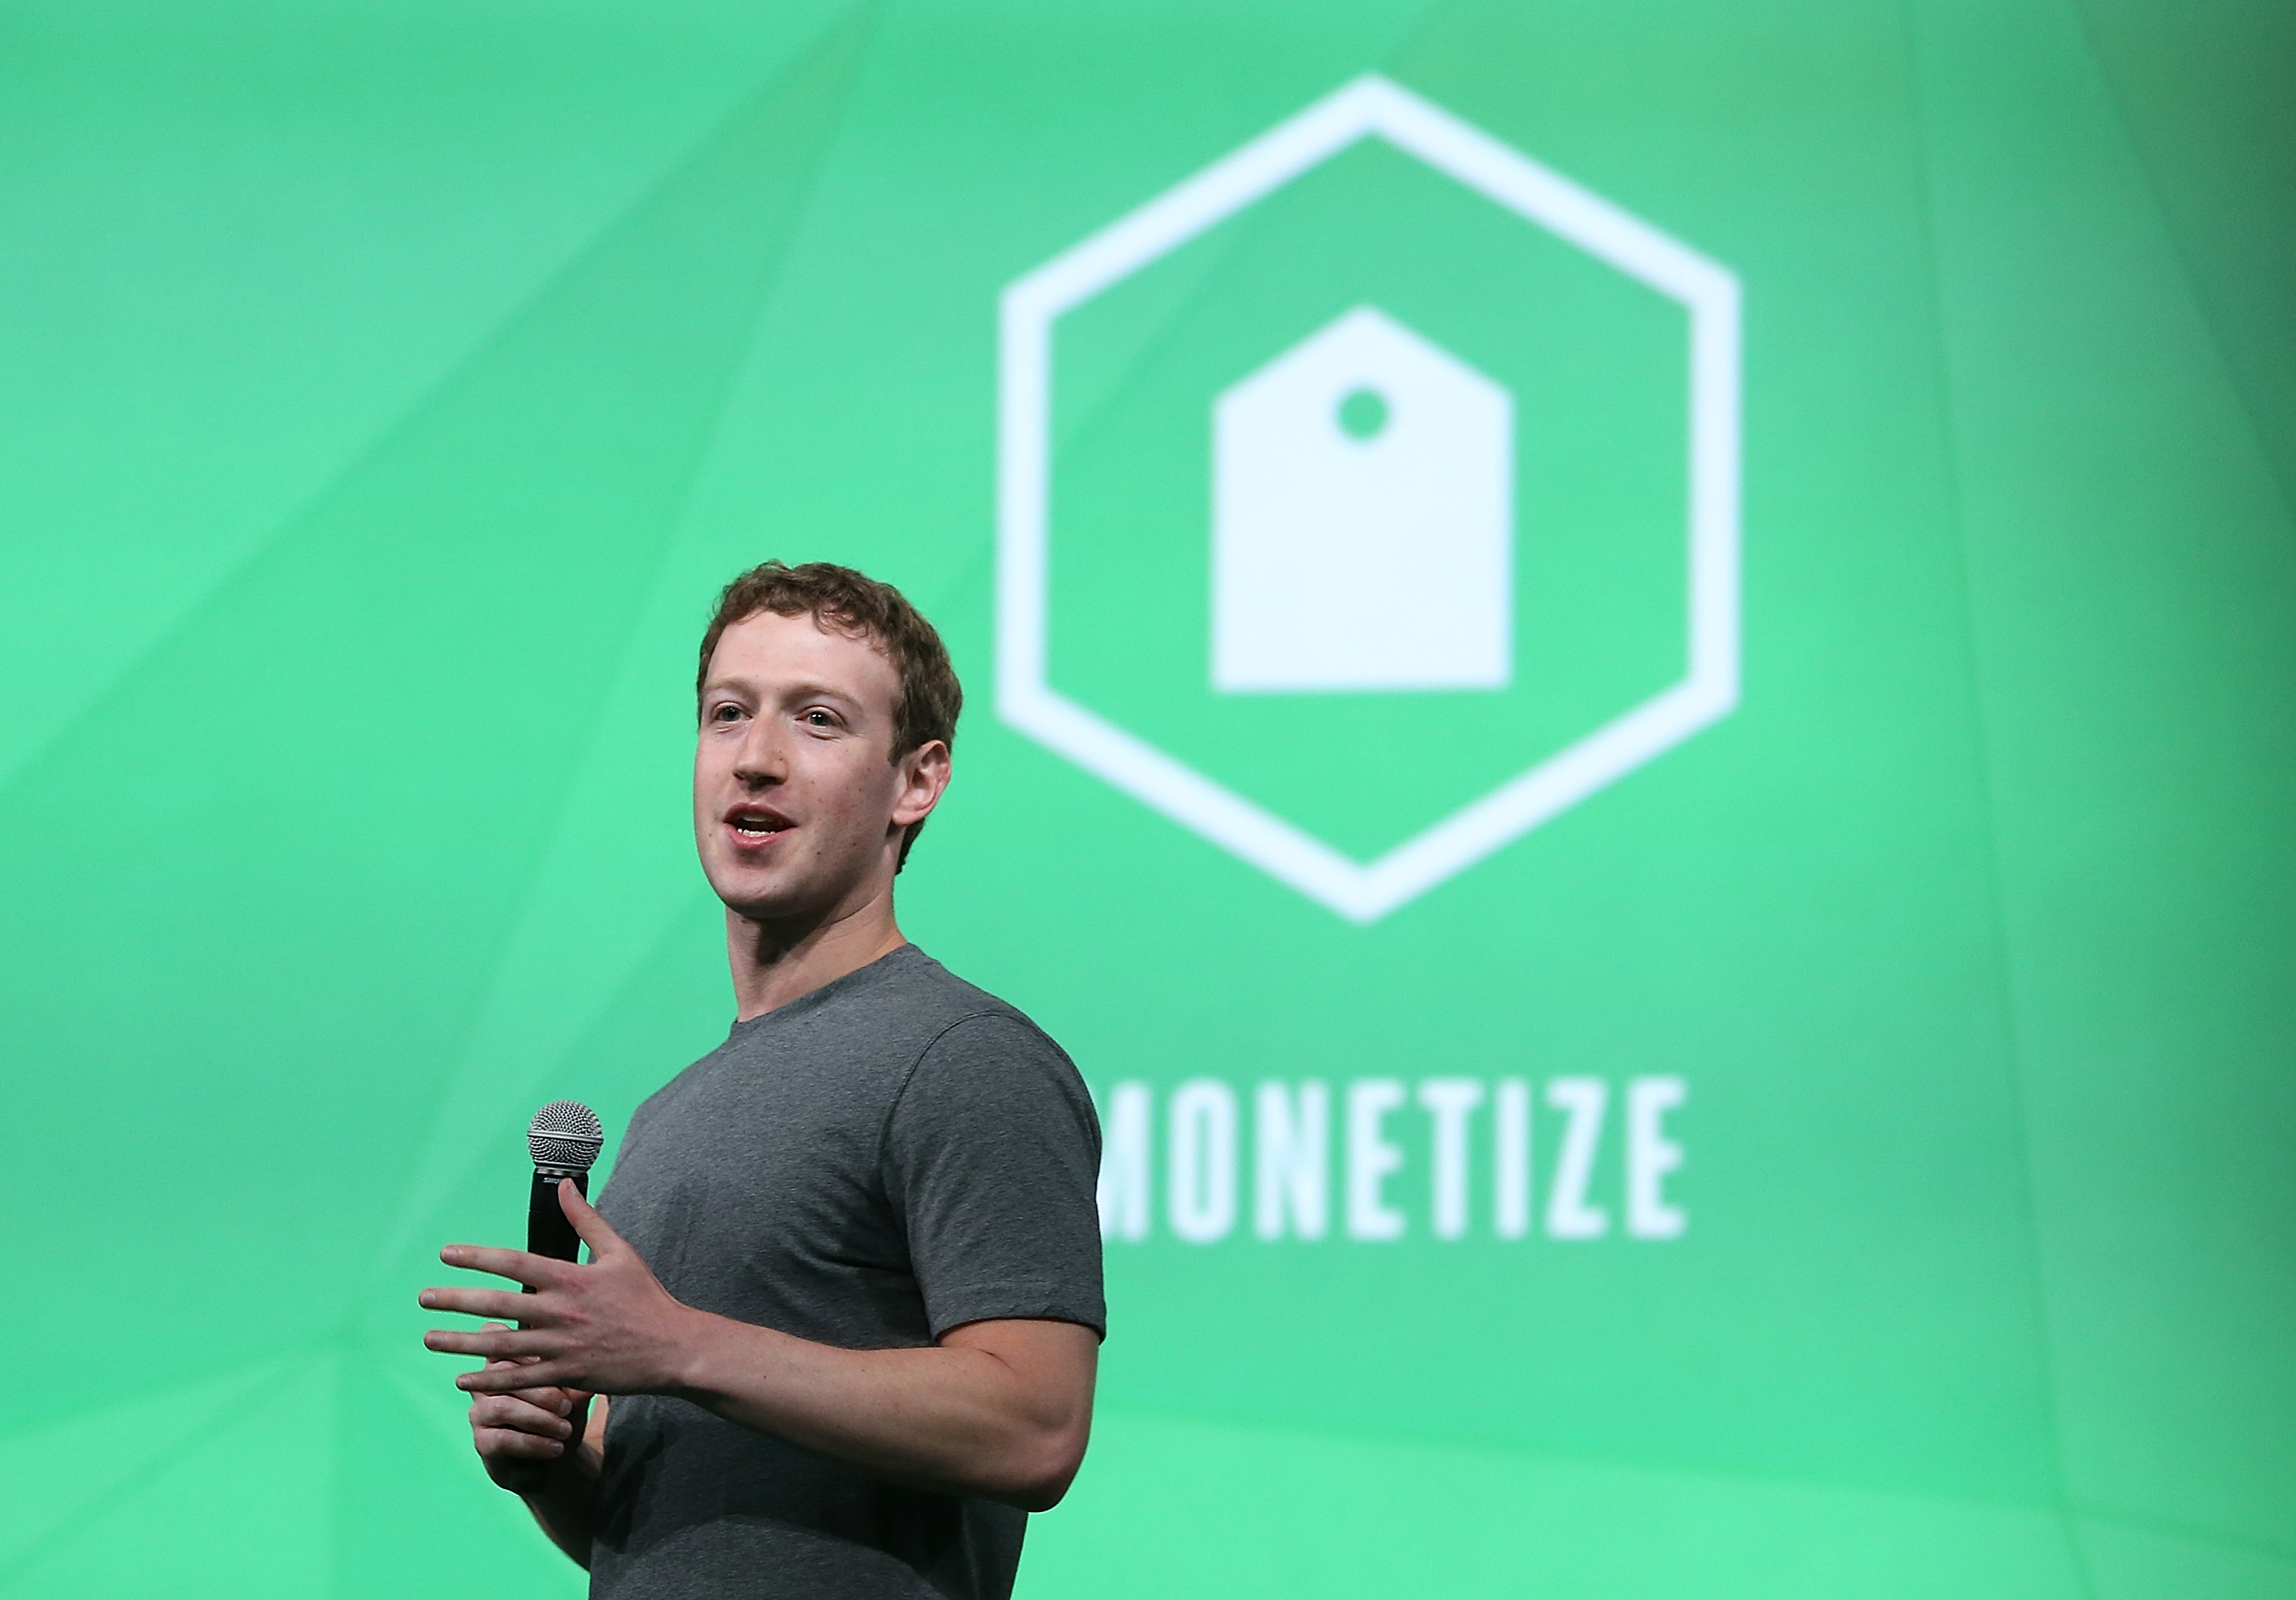 Facebook CEO Mark Zuckerberg delivers the opening kenote at the Facebook f8 conference on April 30, 2014 in San Francisco, California.